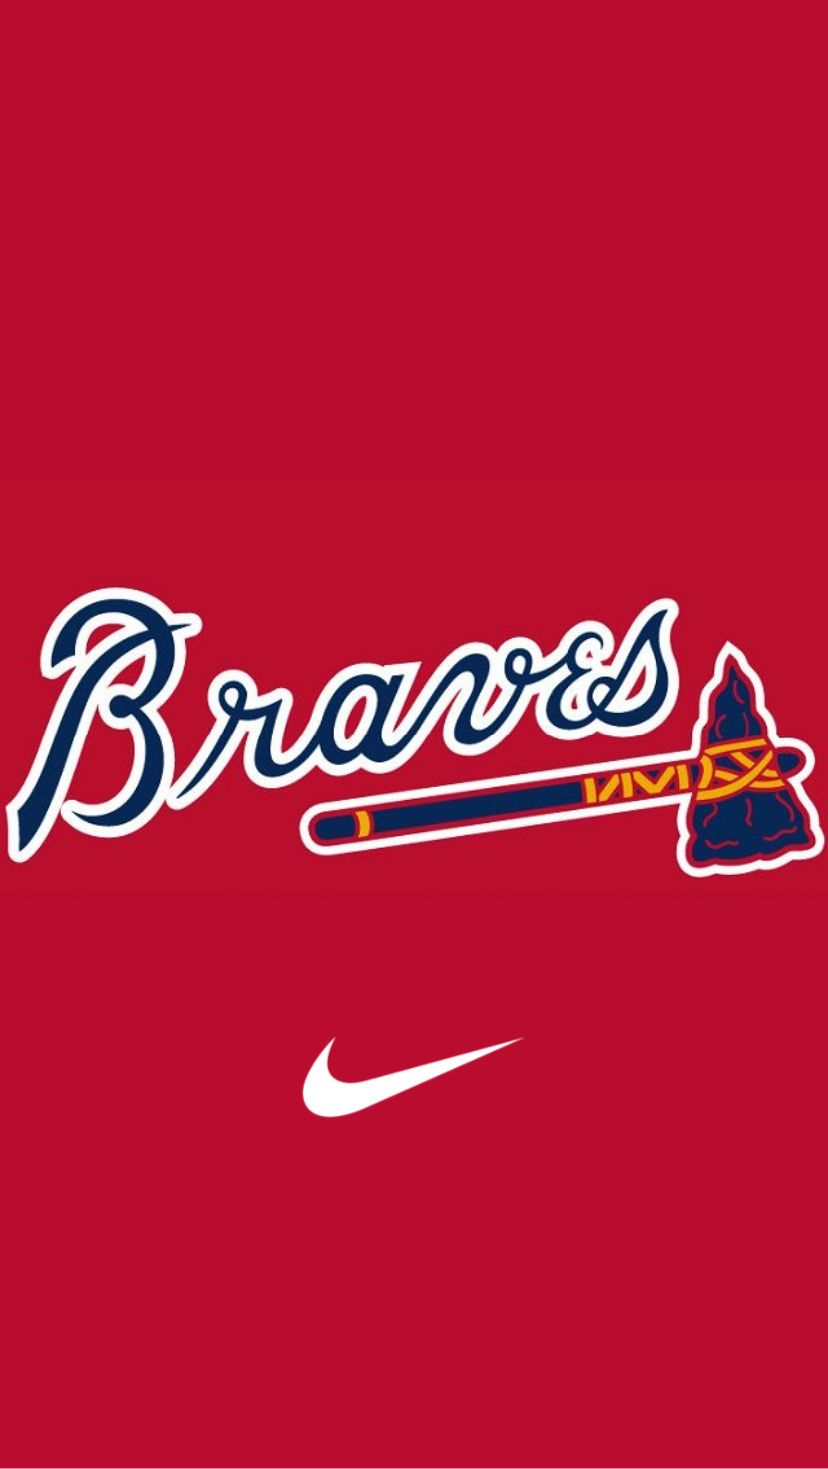 I Created Something Amazing With Picsart Take A Look Https Picsart App Link Vaw1gbpjc6 Atlanta Braves Wallpaper Braves Wallpaper Atlanta Braves